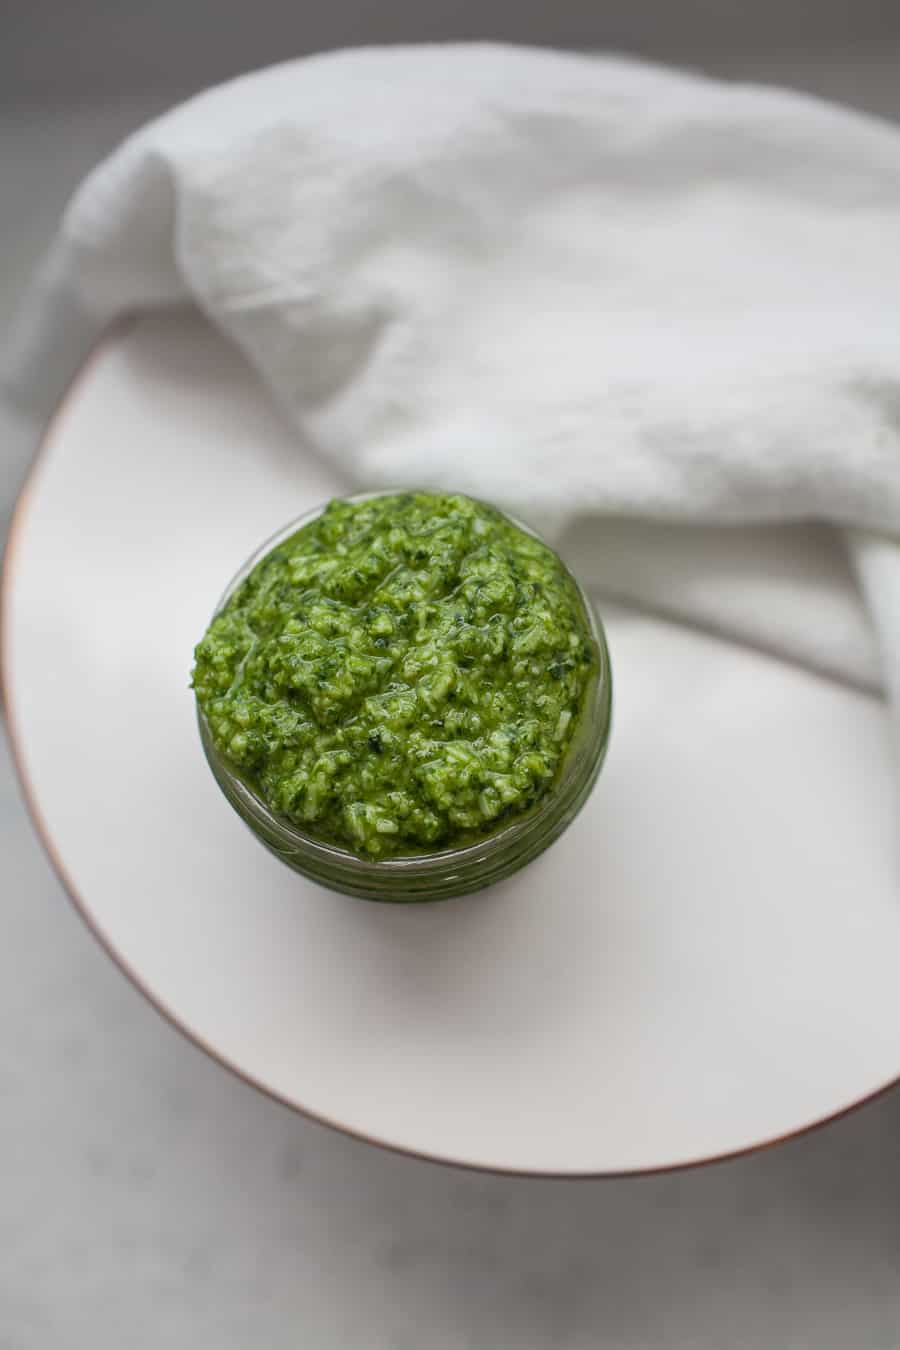 If you're a pesto fan, you're going to fall even more in love with pesto once you realize how easy it is to make it homemade! This homemade kale arugula pesto variation is a perfect peppery, smooth blend of pesto that you'll choose every time. Make this kale arugula pesto ASAP! homemade pesto | arugula pesto | kale pesto | kale arugula pesto | homemade italian sauces | homemade pasta sauce | pasta sauce recipes